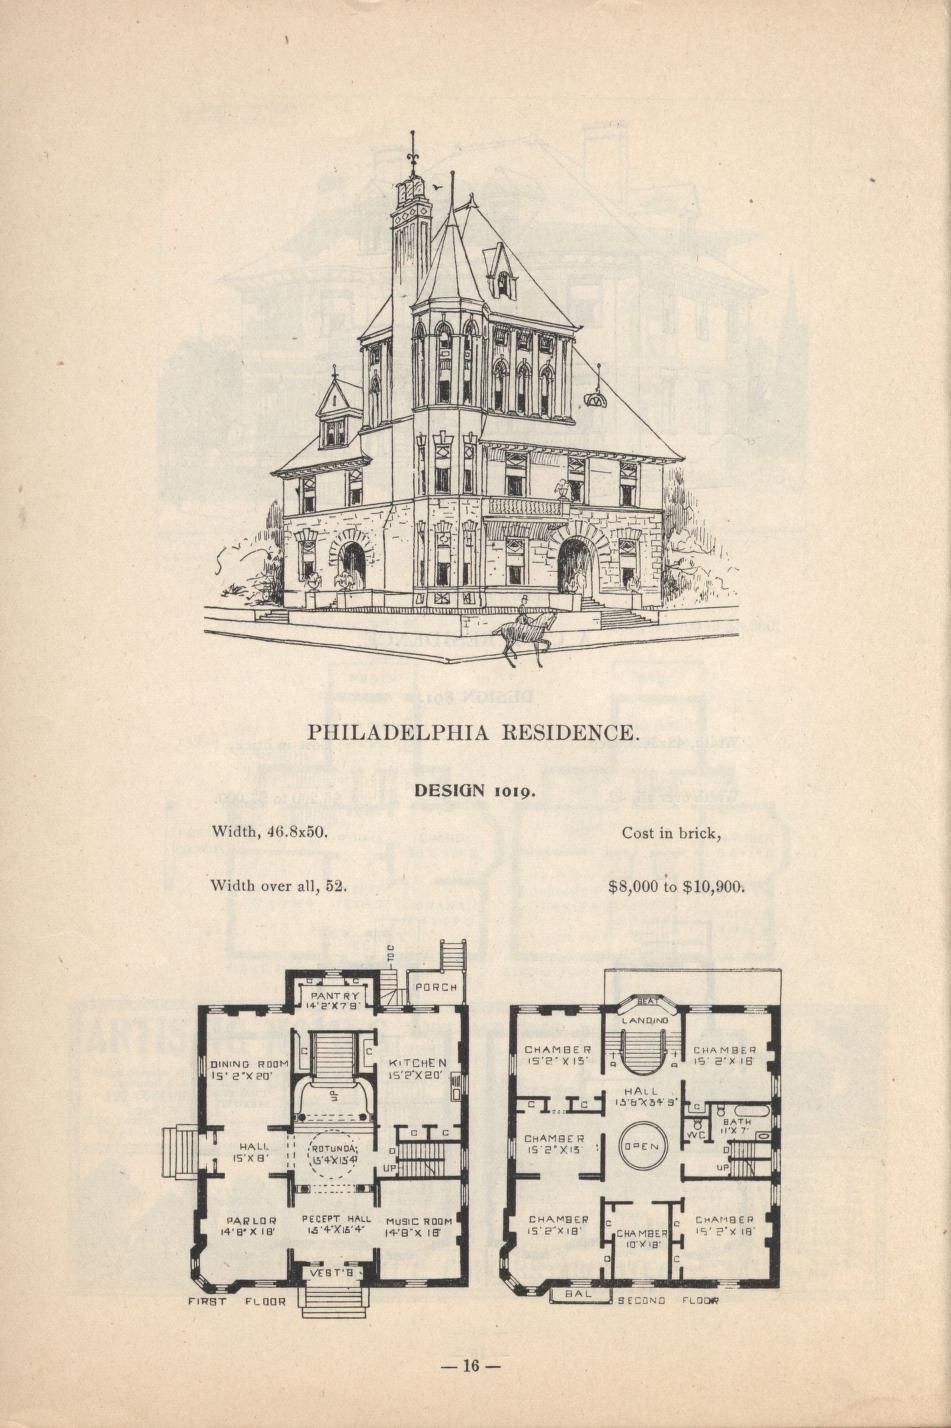 Artistic City Houses No 43 Herbert Chivers Free Download Borrow And Streaming Internet Archive Victorian House Plans House Plans Vintage House Plans